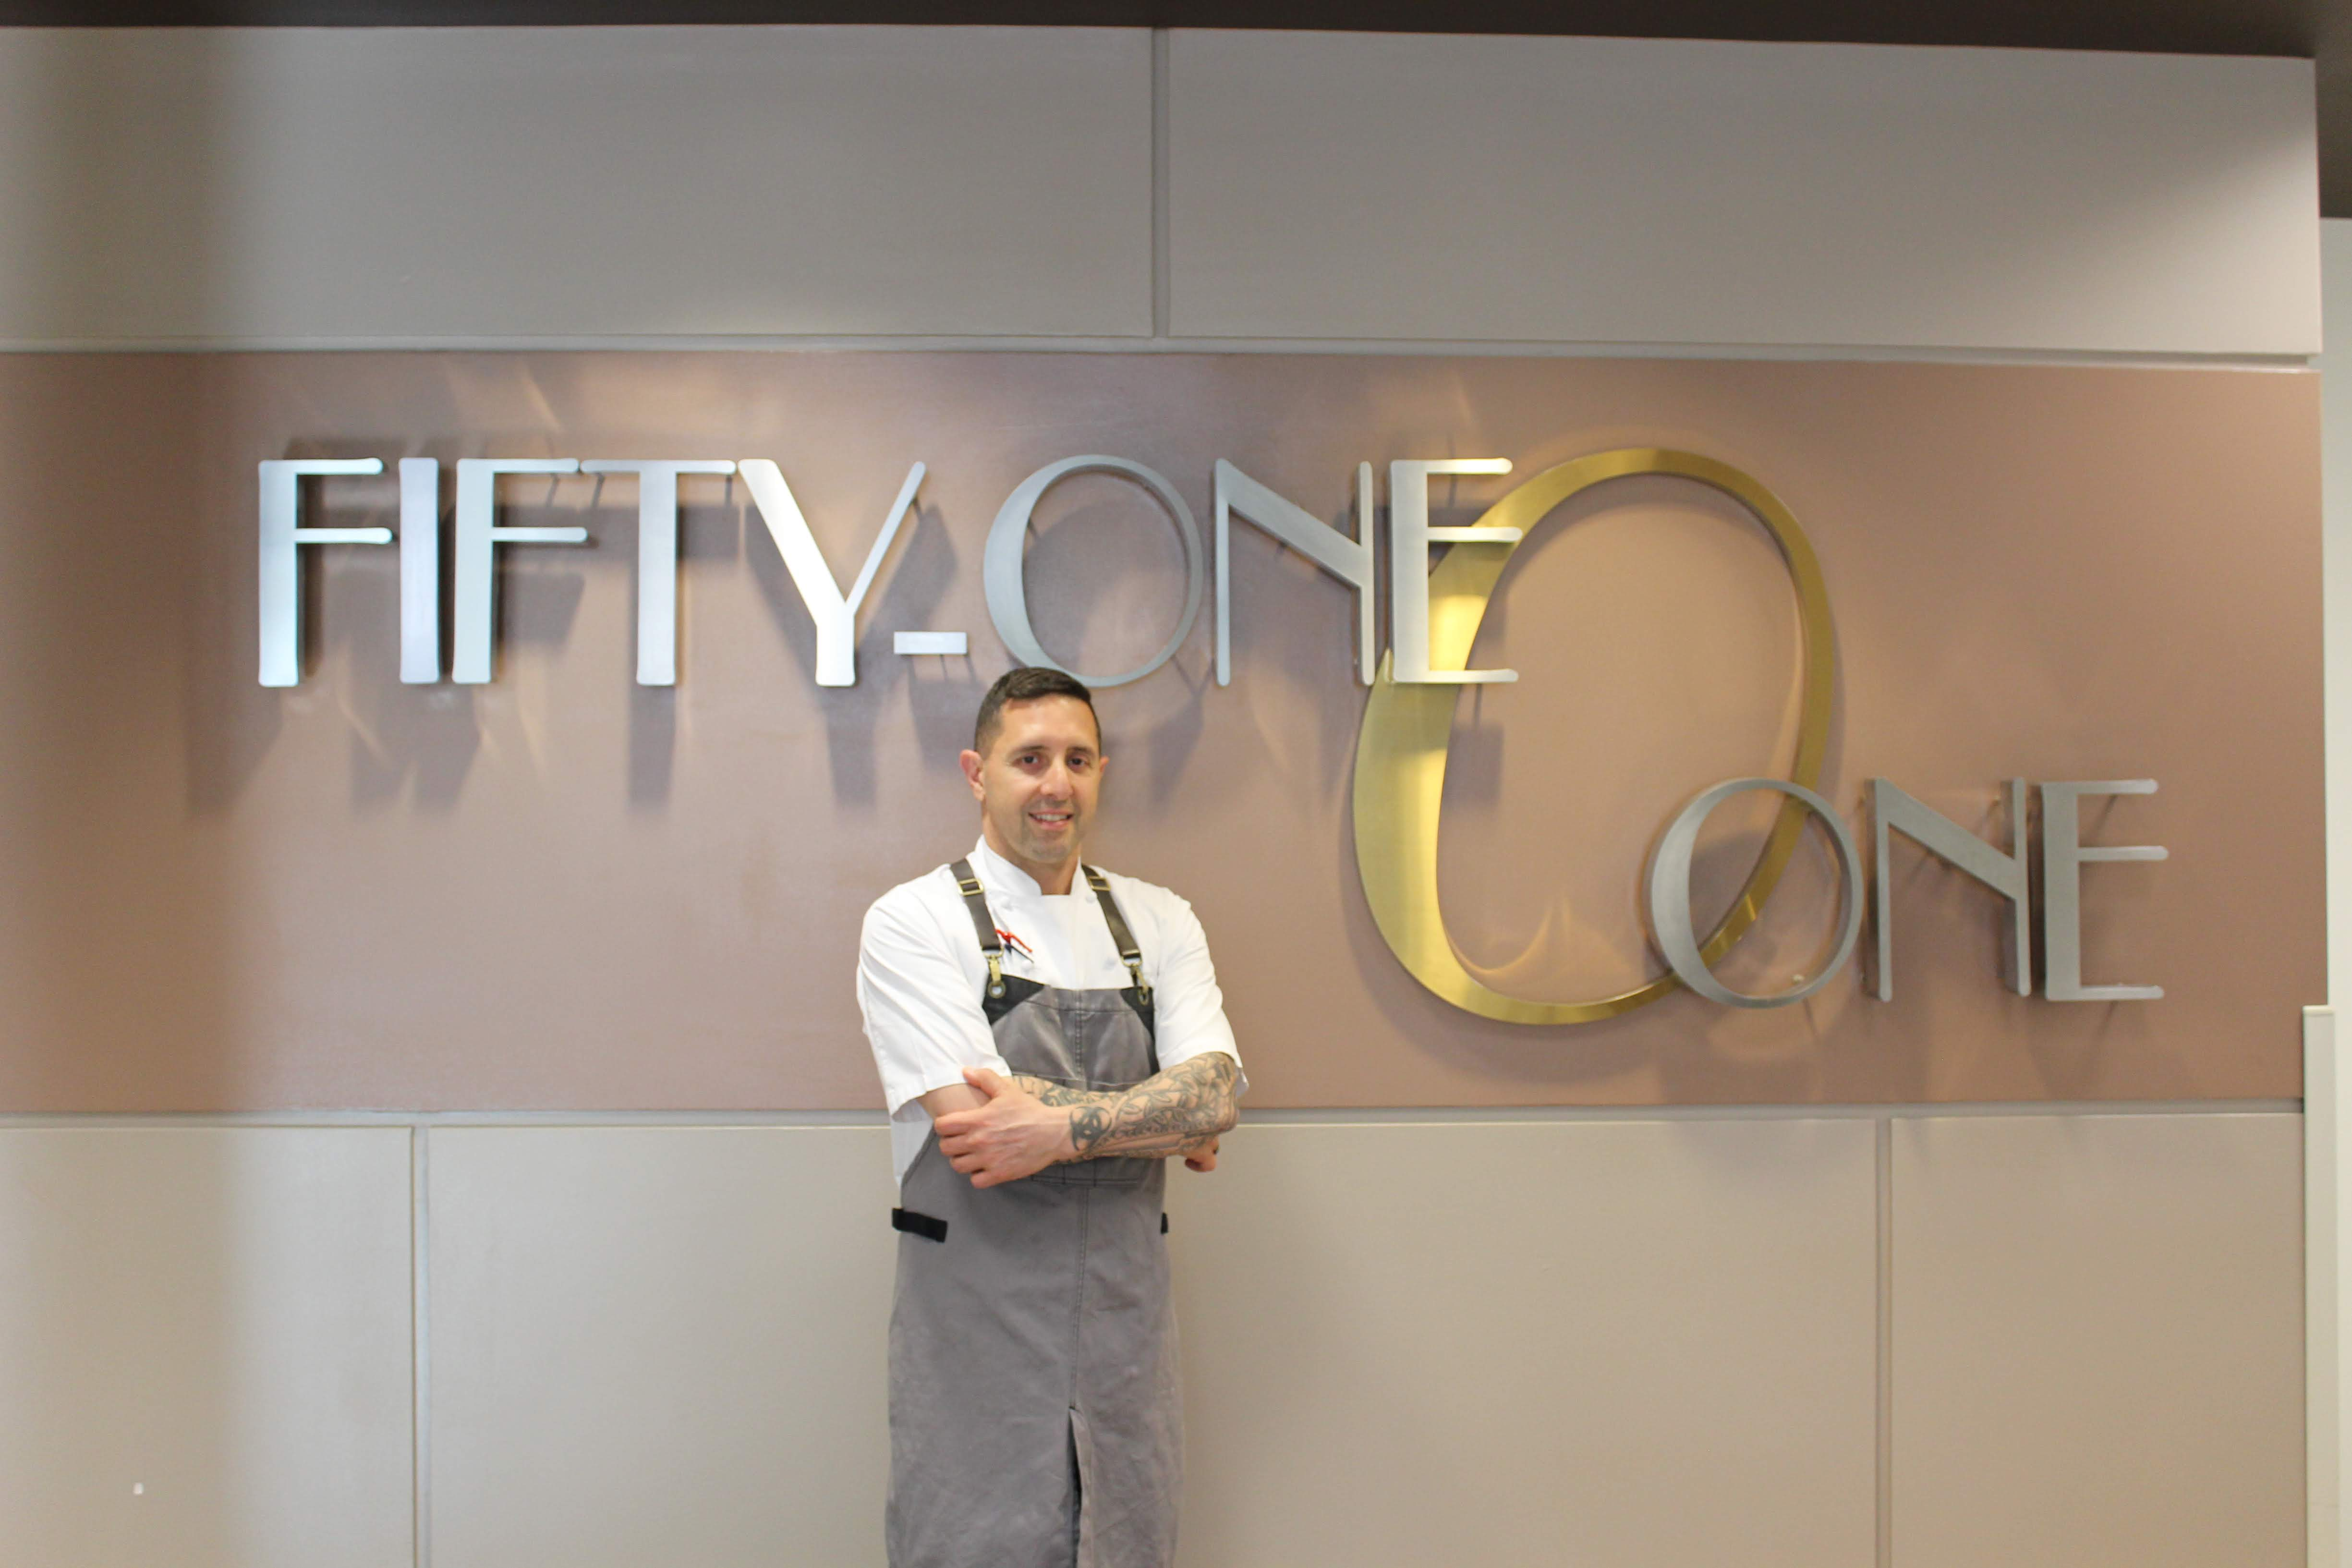 Chef Cosenza in front of the Fifty-One O One sign